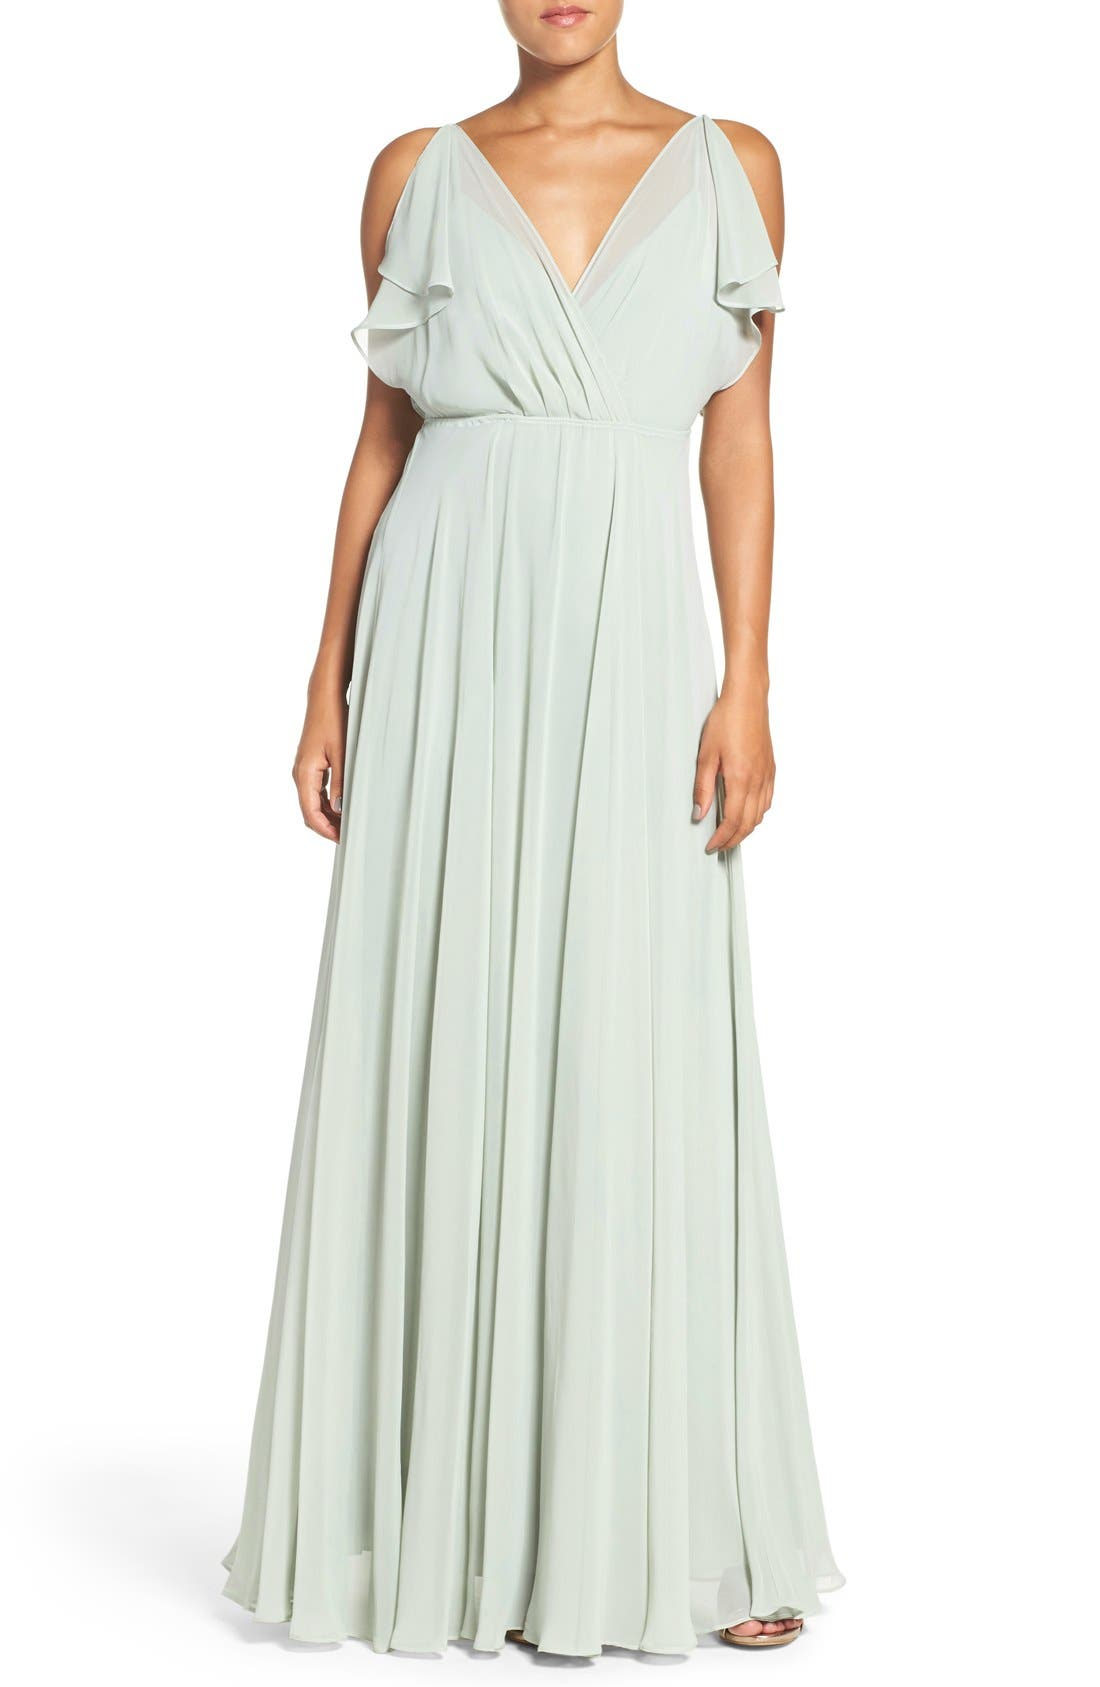 Alternate Image 1 Selected - Jenny Yoo Cassie Flutter Sleeve Chiffon A-Line Gown